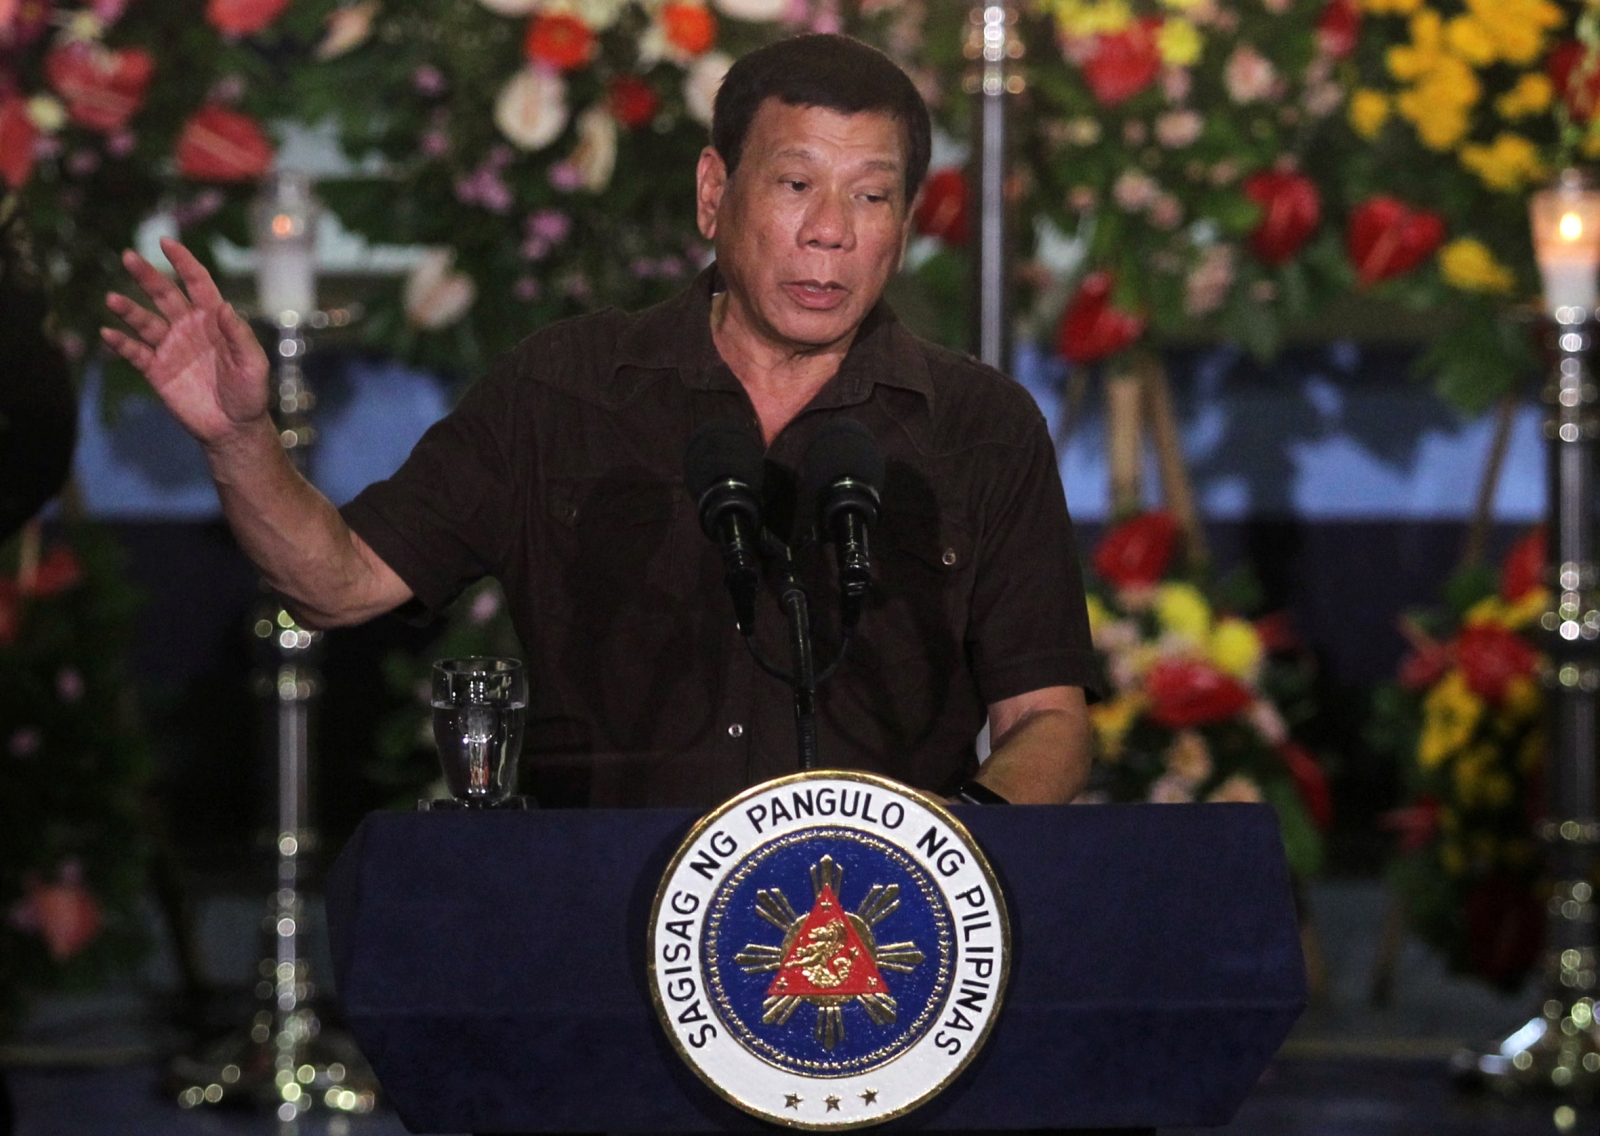 Palace Clarifies Duterte's Martial Law Remark: He Knows Limits Of Executive Powers